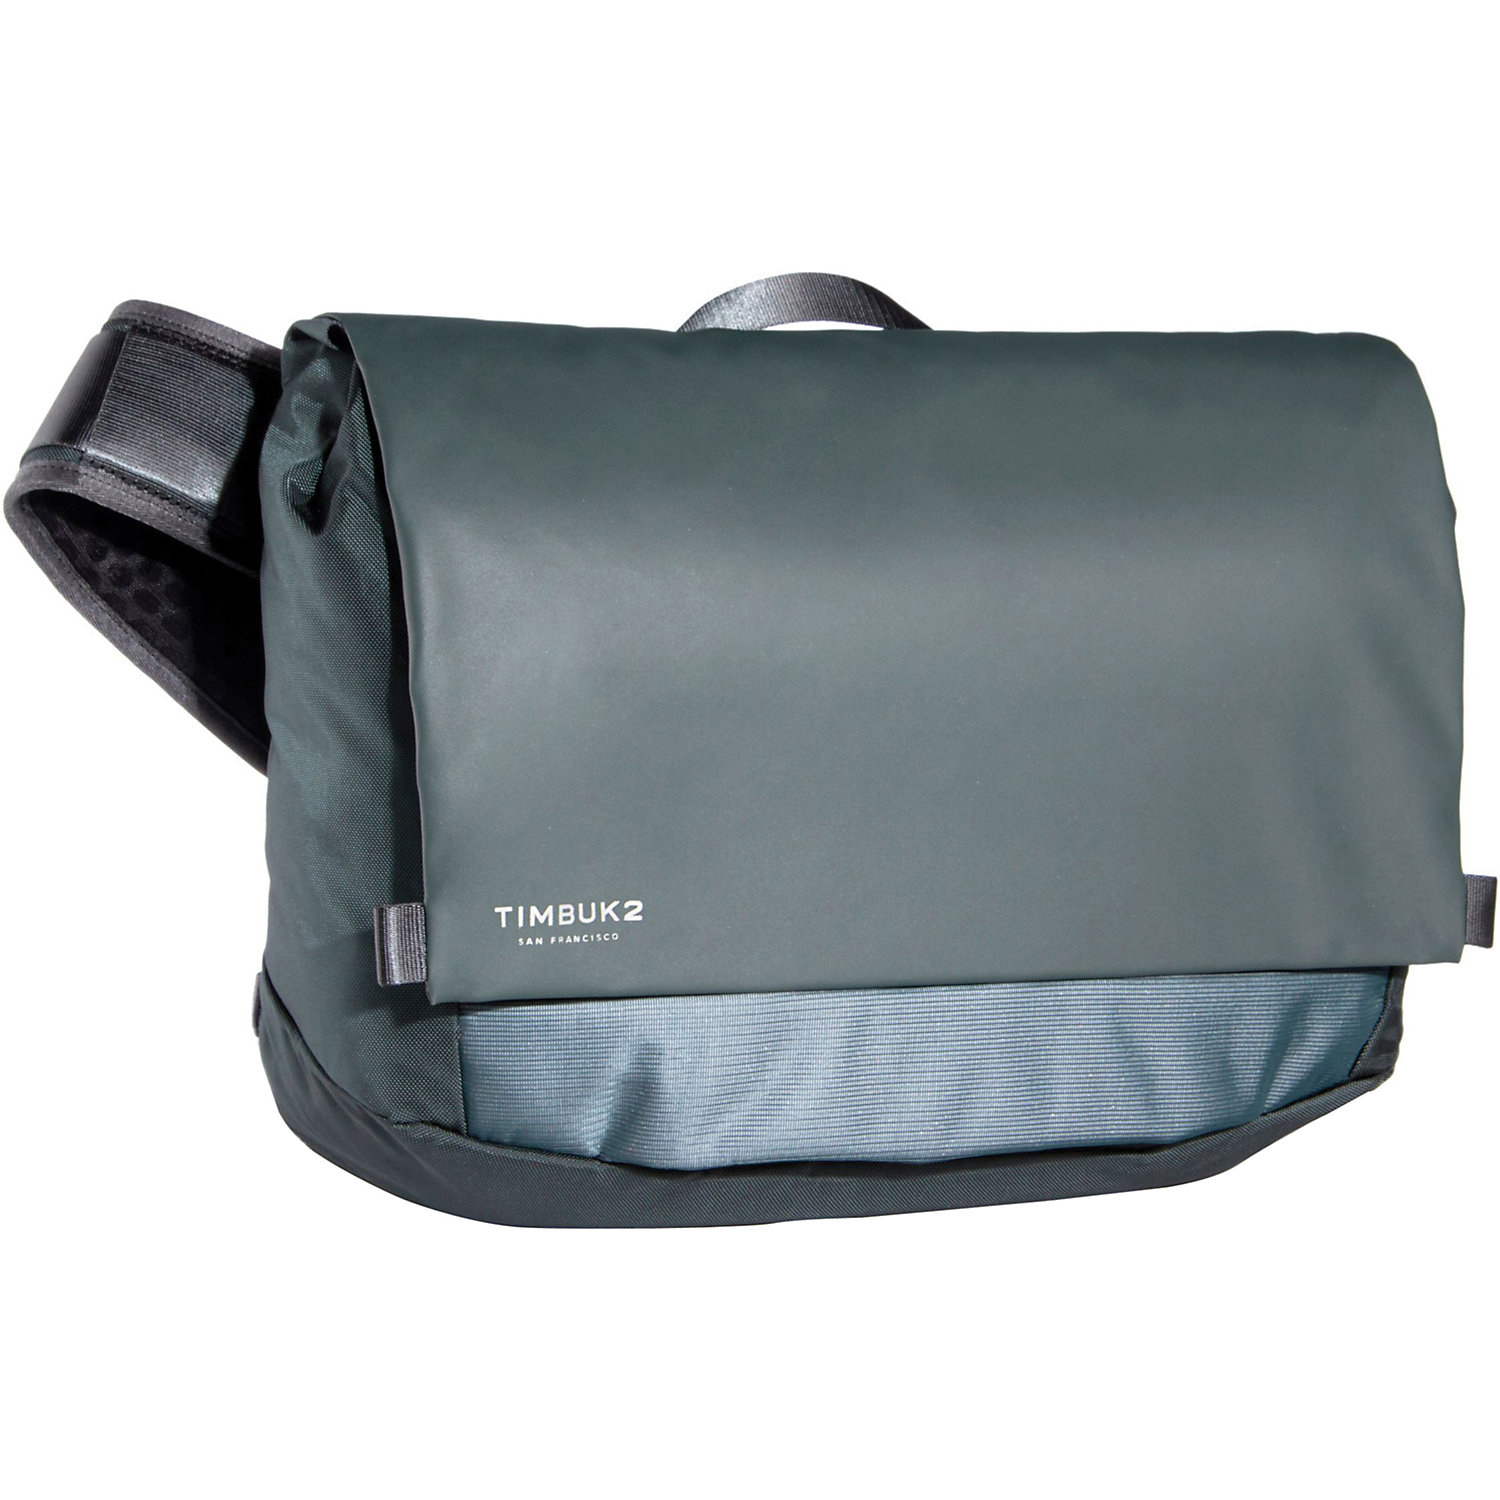 Timbuk2 Stark Messenger Bag - Moosejaw